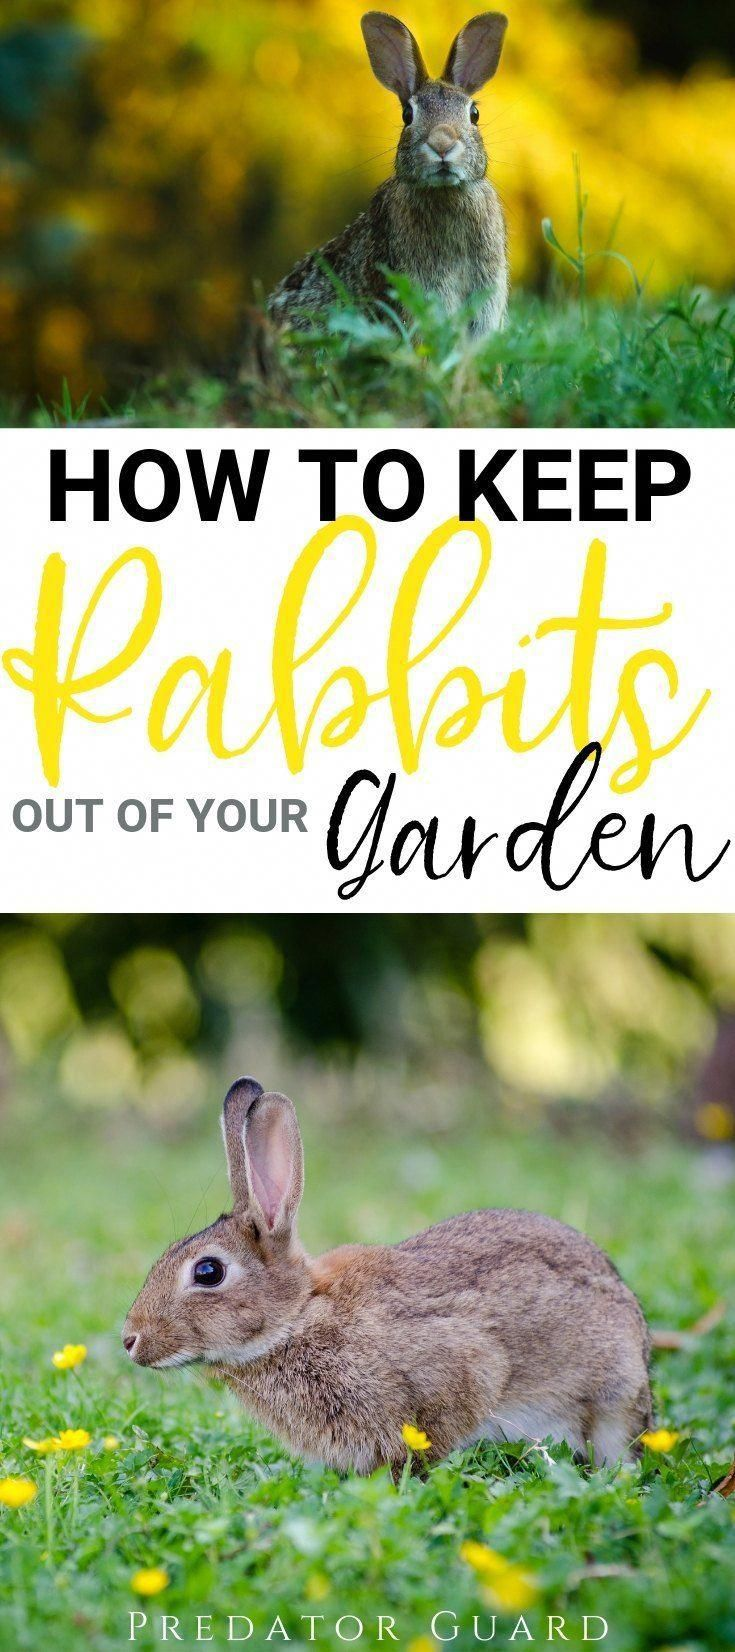 How To Keep Rabbits Out of The Garden | Predator Guard # ...